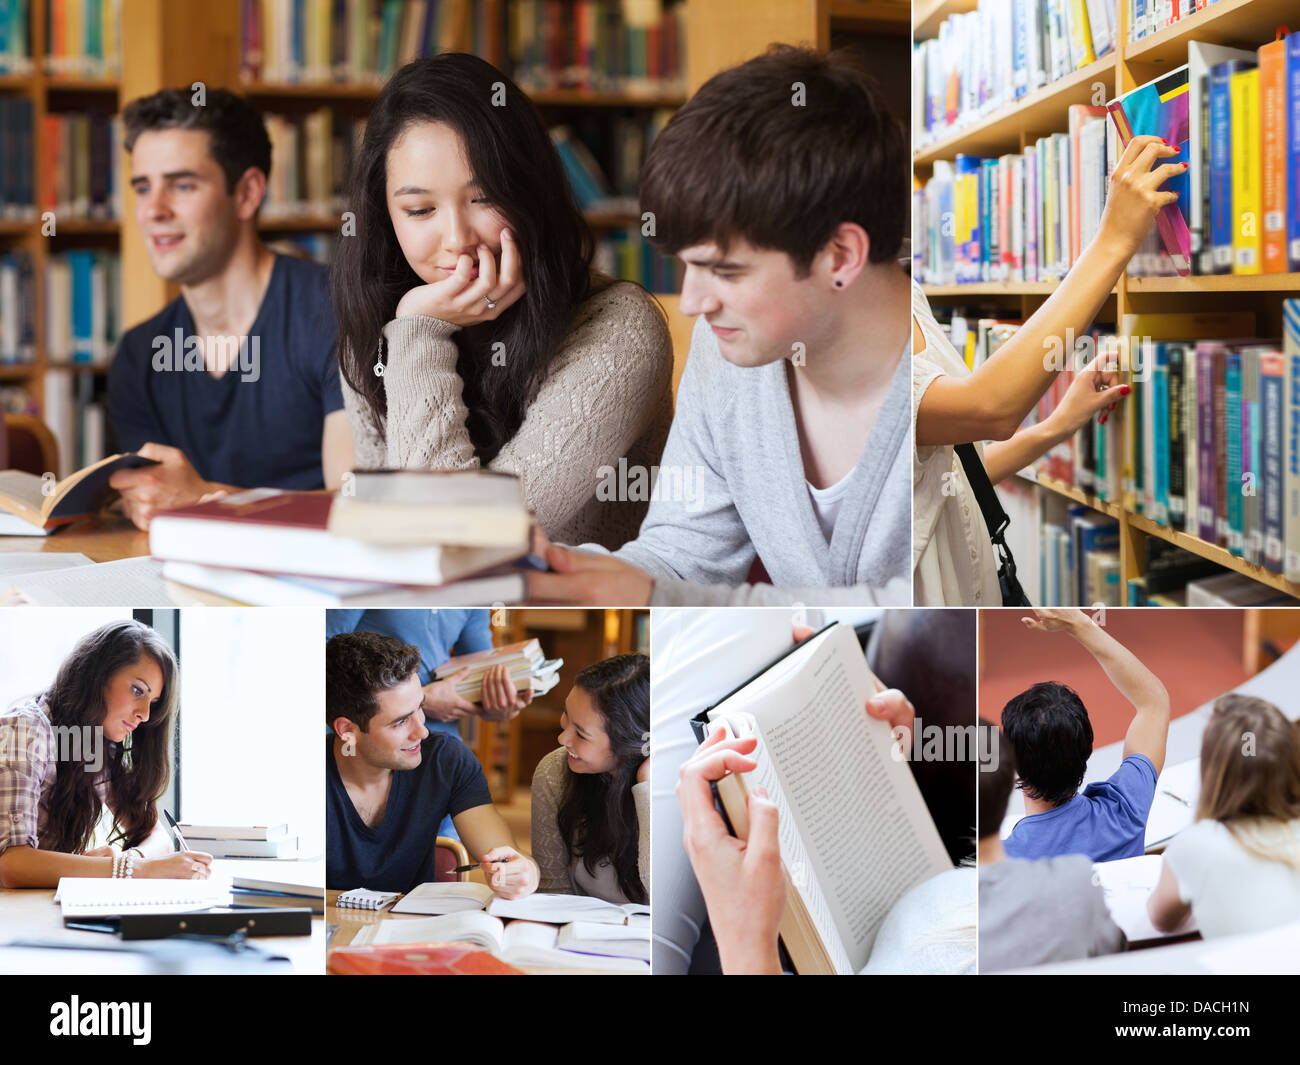 Collage of students in library - Stock Image